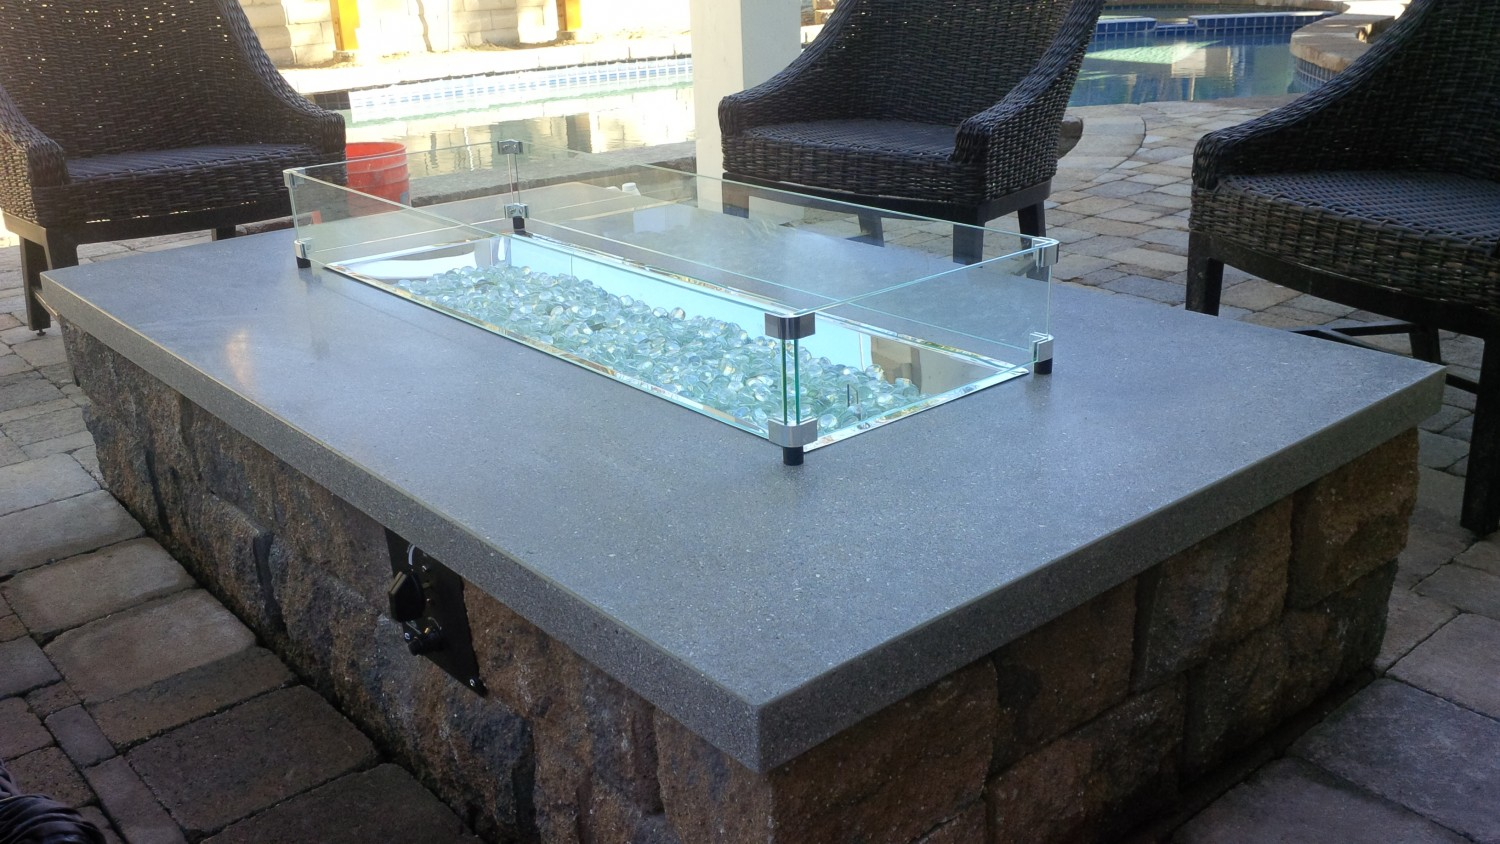 Fire Pit with Glass Rocks - Fire Pit With Glass Rocks FIREPLACE DESIGN IDEAS